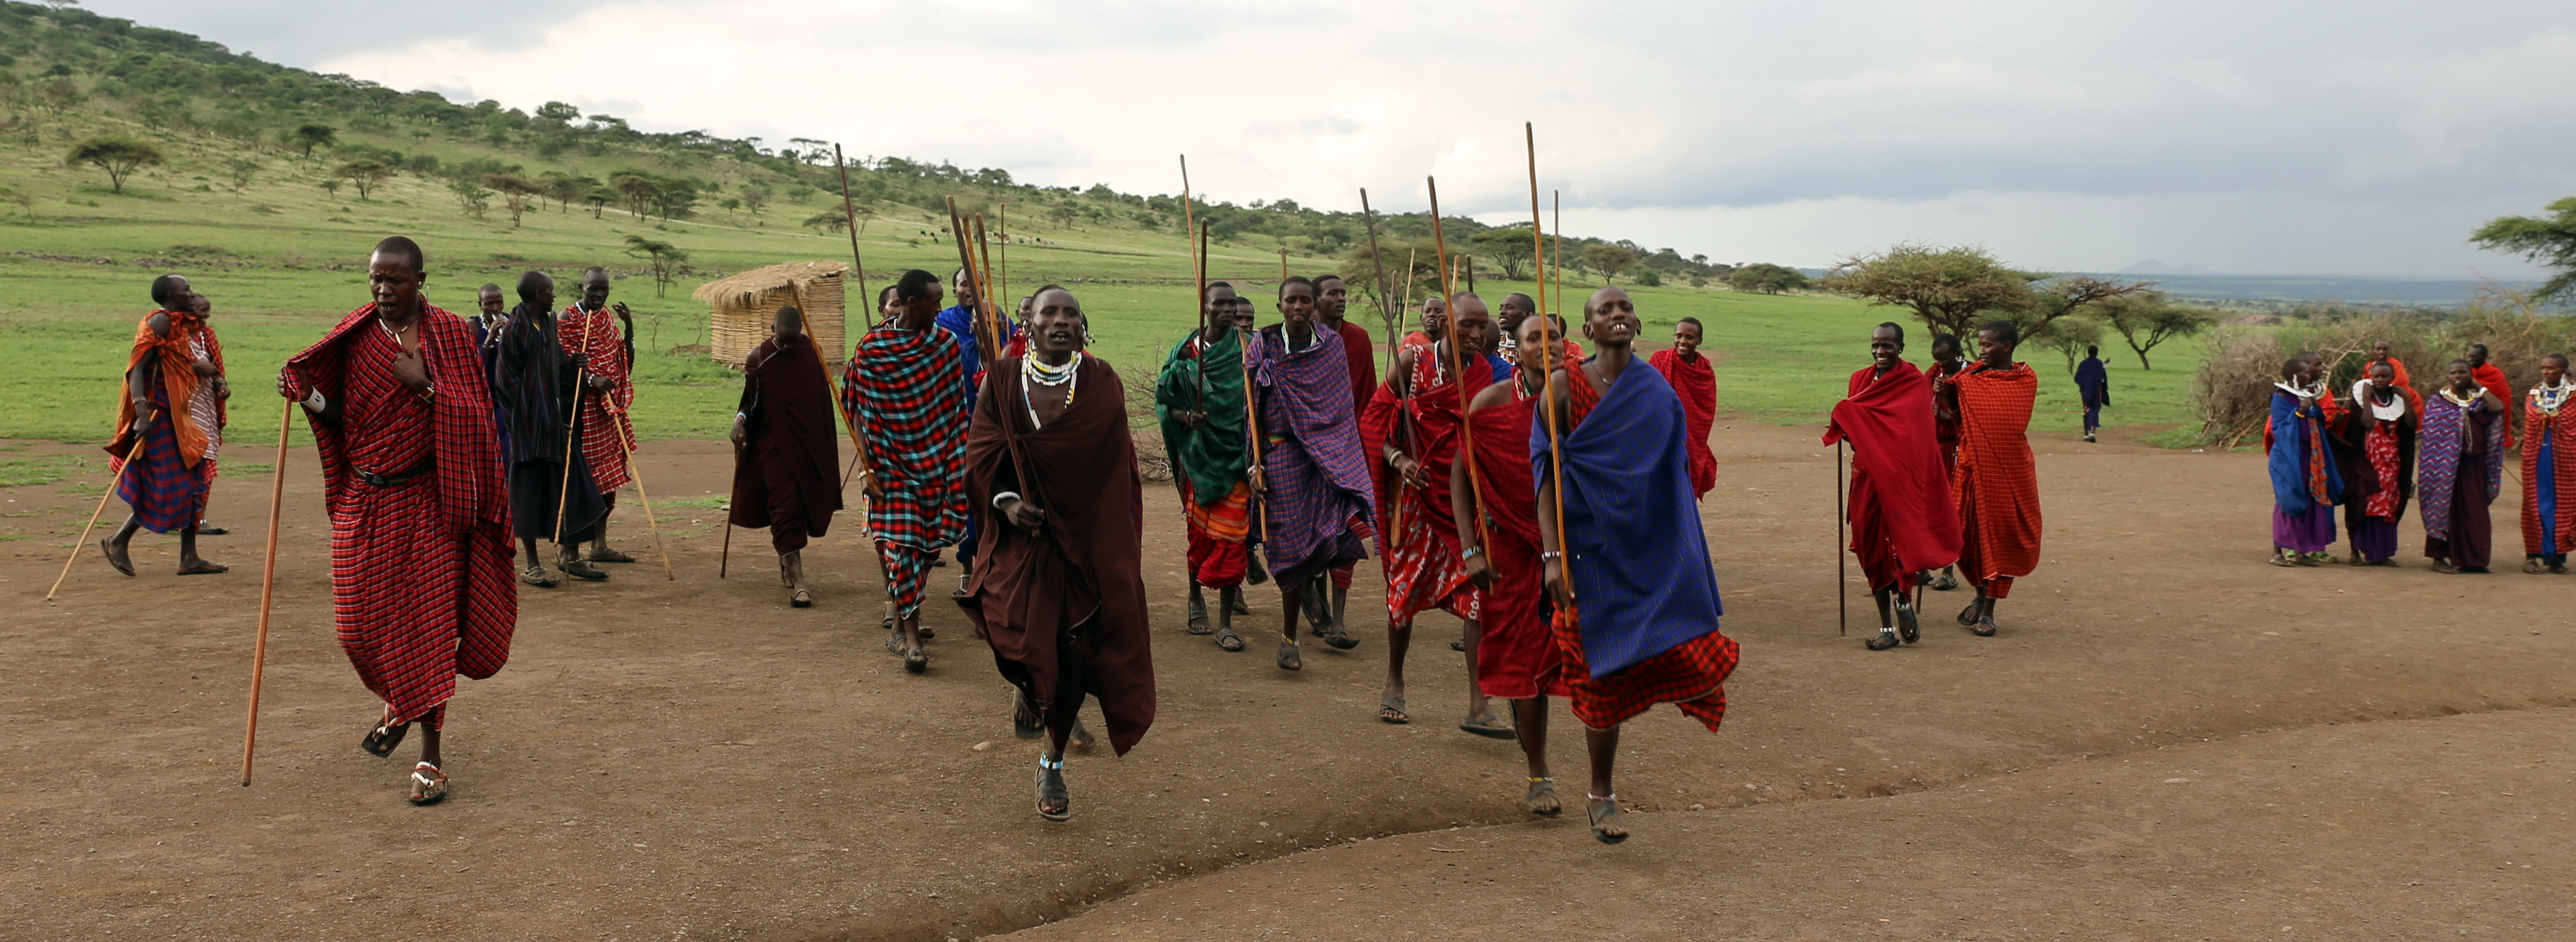 Massai Village (83)